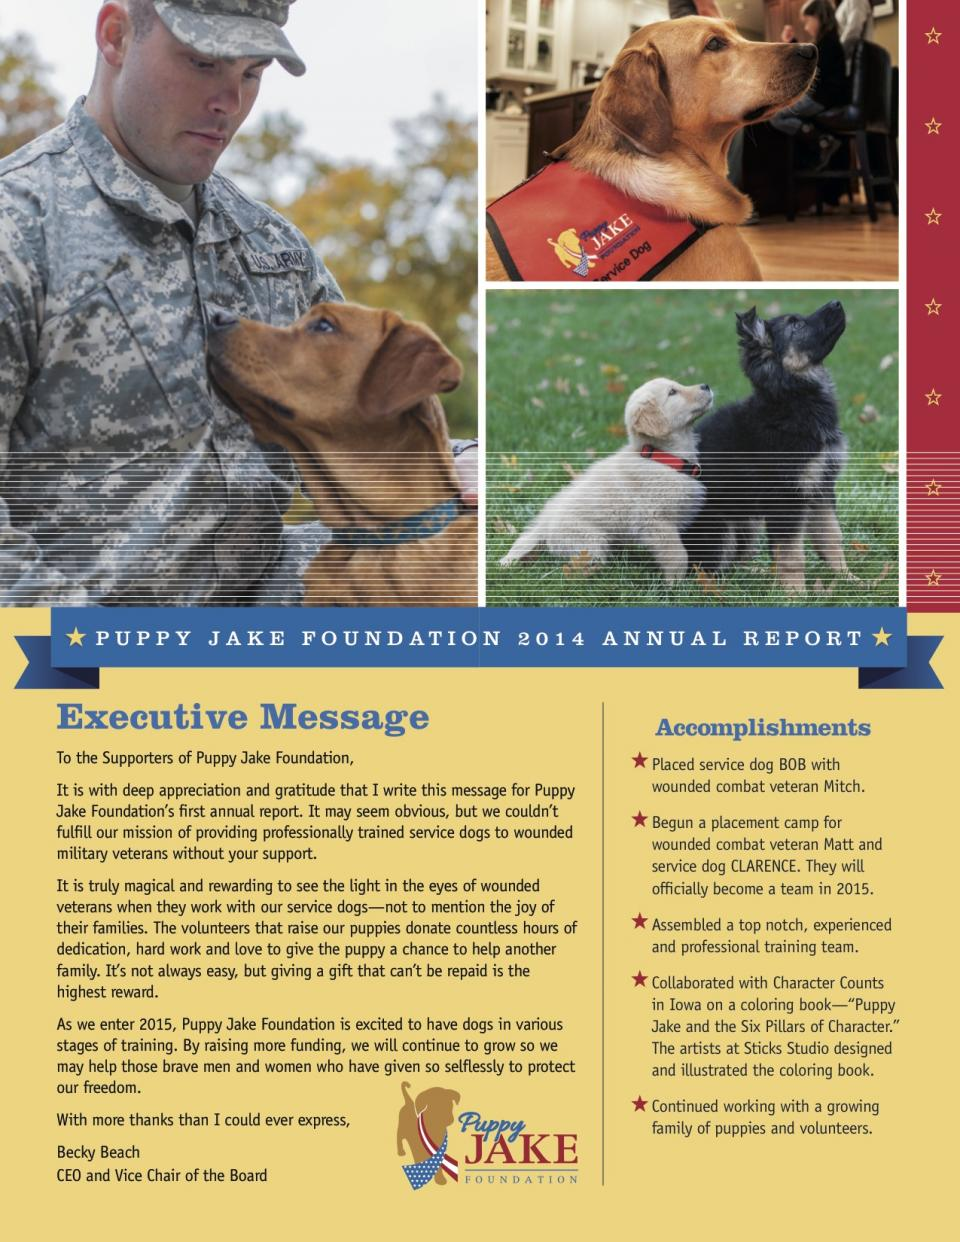 Thank You To So Many Generous Individuals Corporations And Foundations That Support Our Mission Provide Professionally Trained Service Dogs Wounded